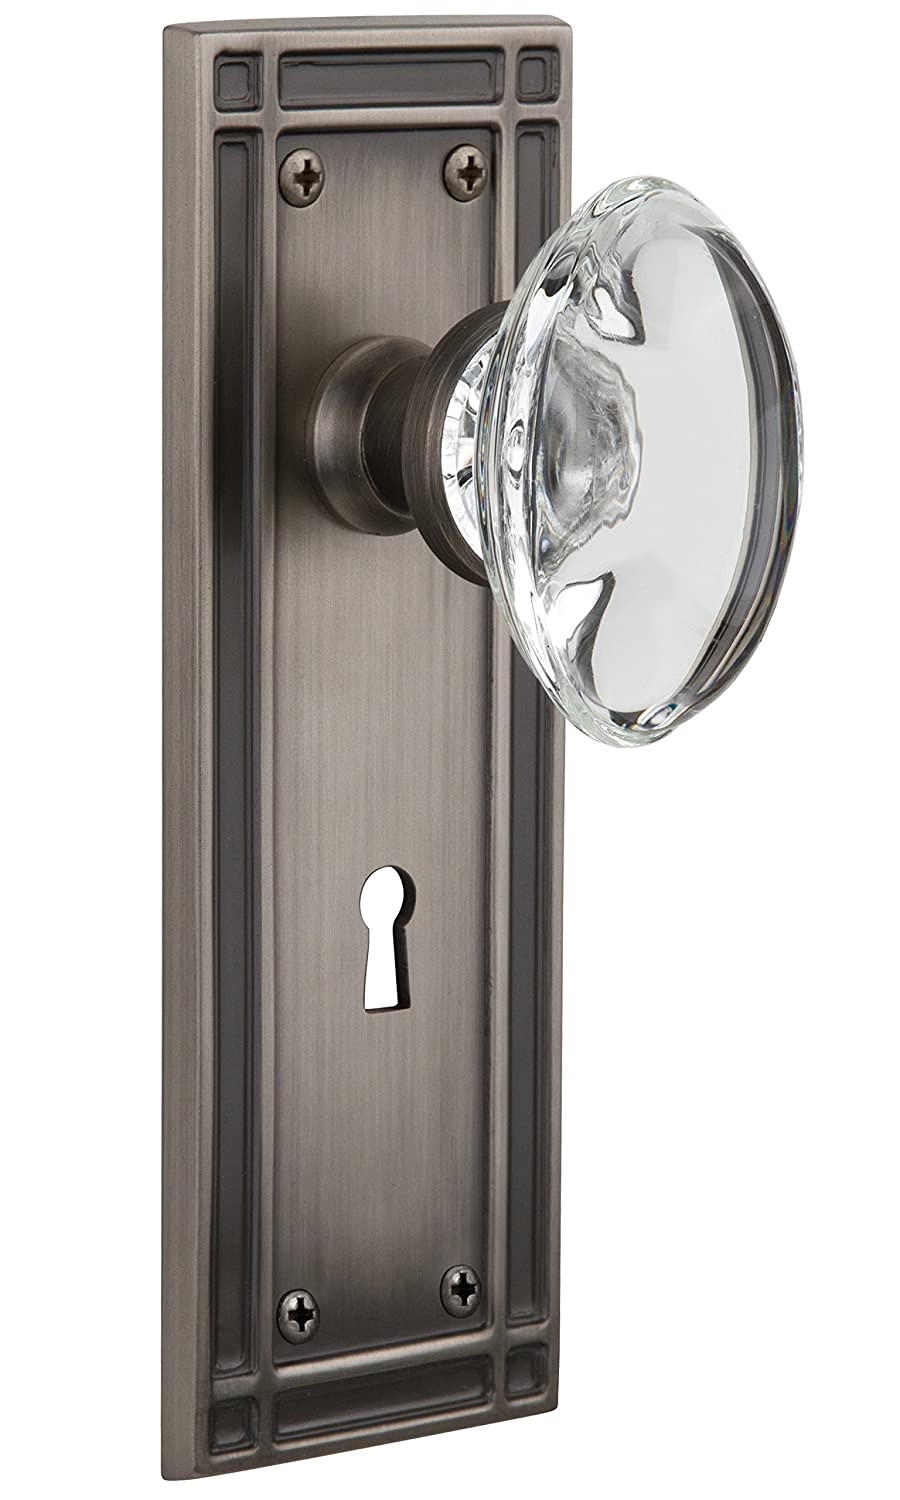 Passage Antique Pewter 2.75 Nostalgic Warehouse Mission Plate with Keyhole Oval Clear Crystal Glass Knob